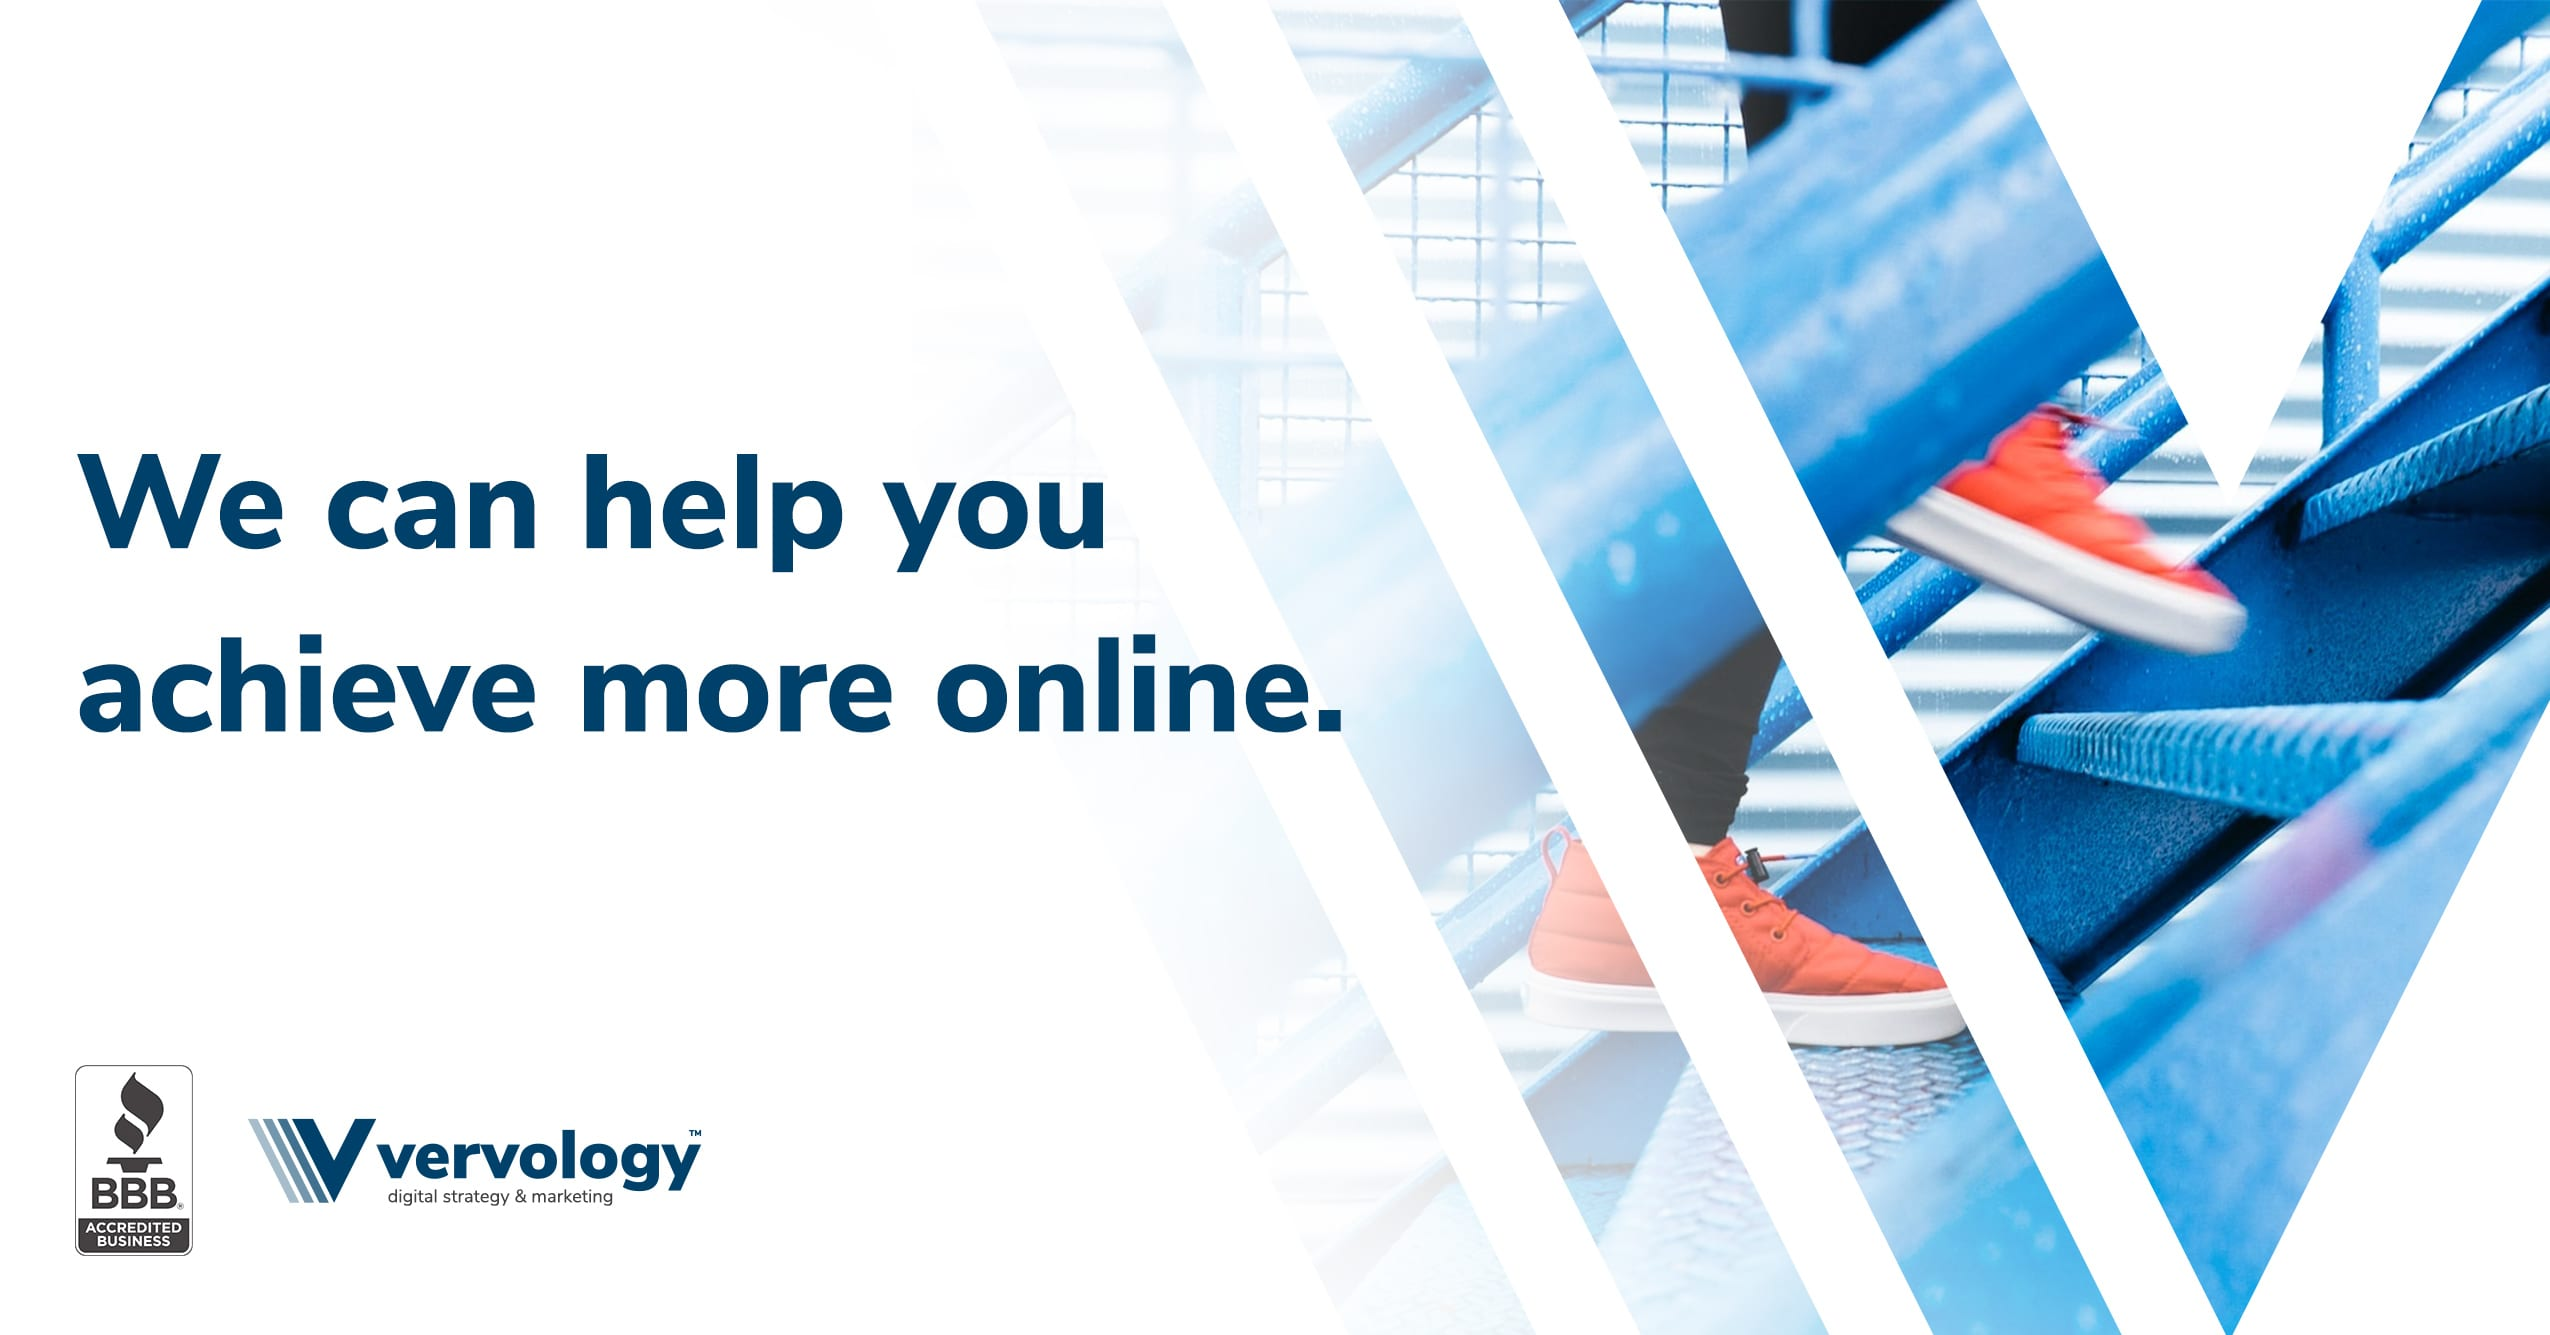 We can help you achieve more online.